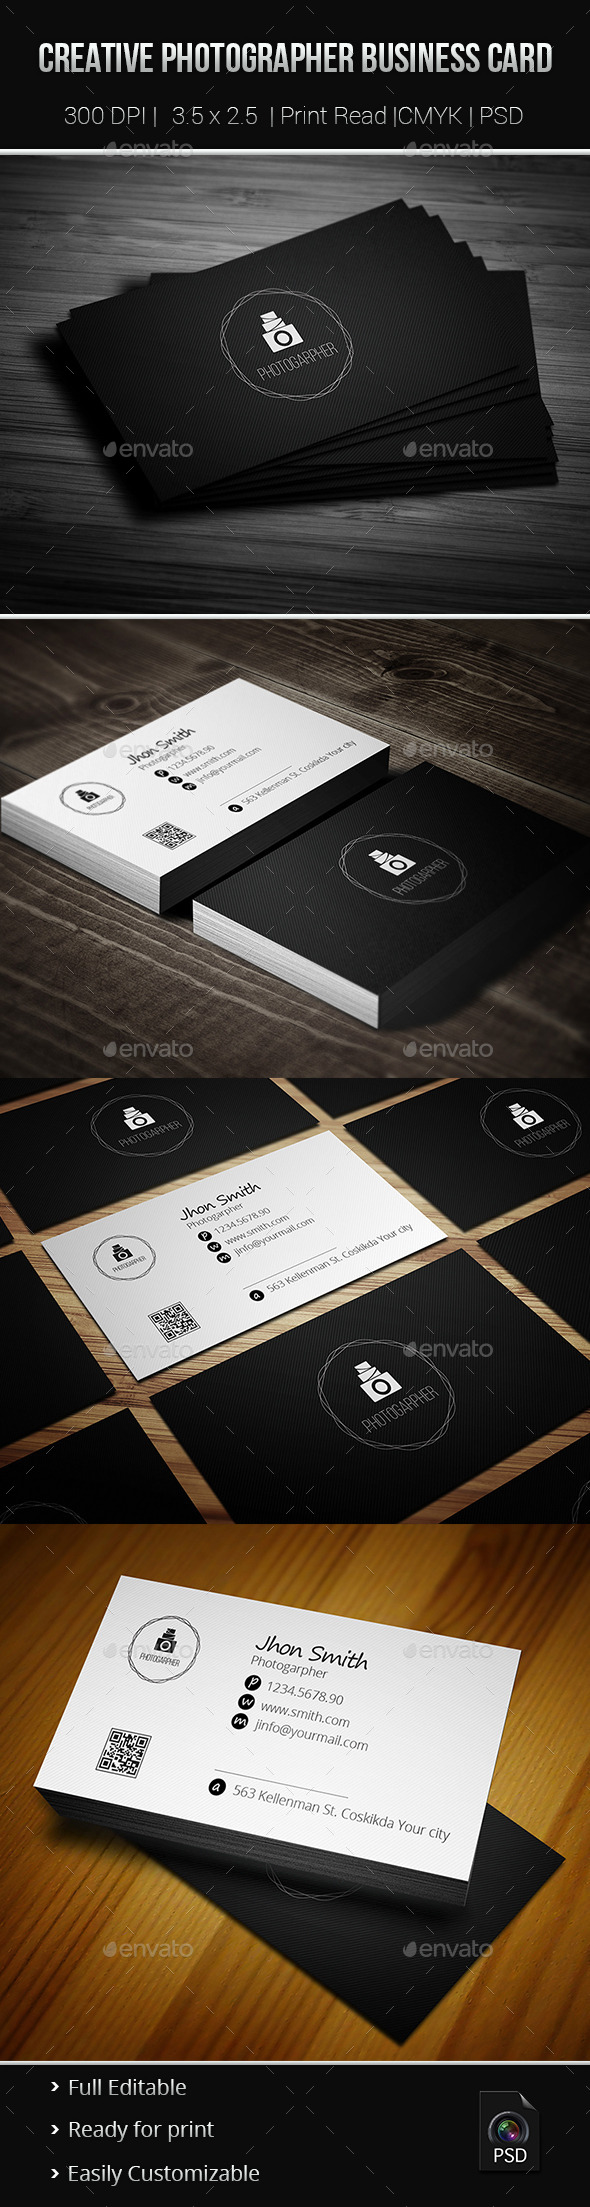 GraphicRiver Creative Photgrapher Business Card 02 9386241